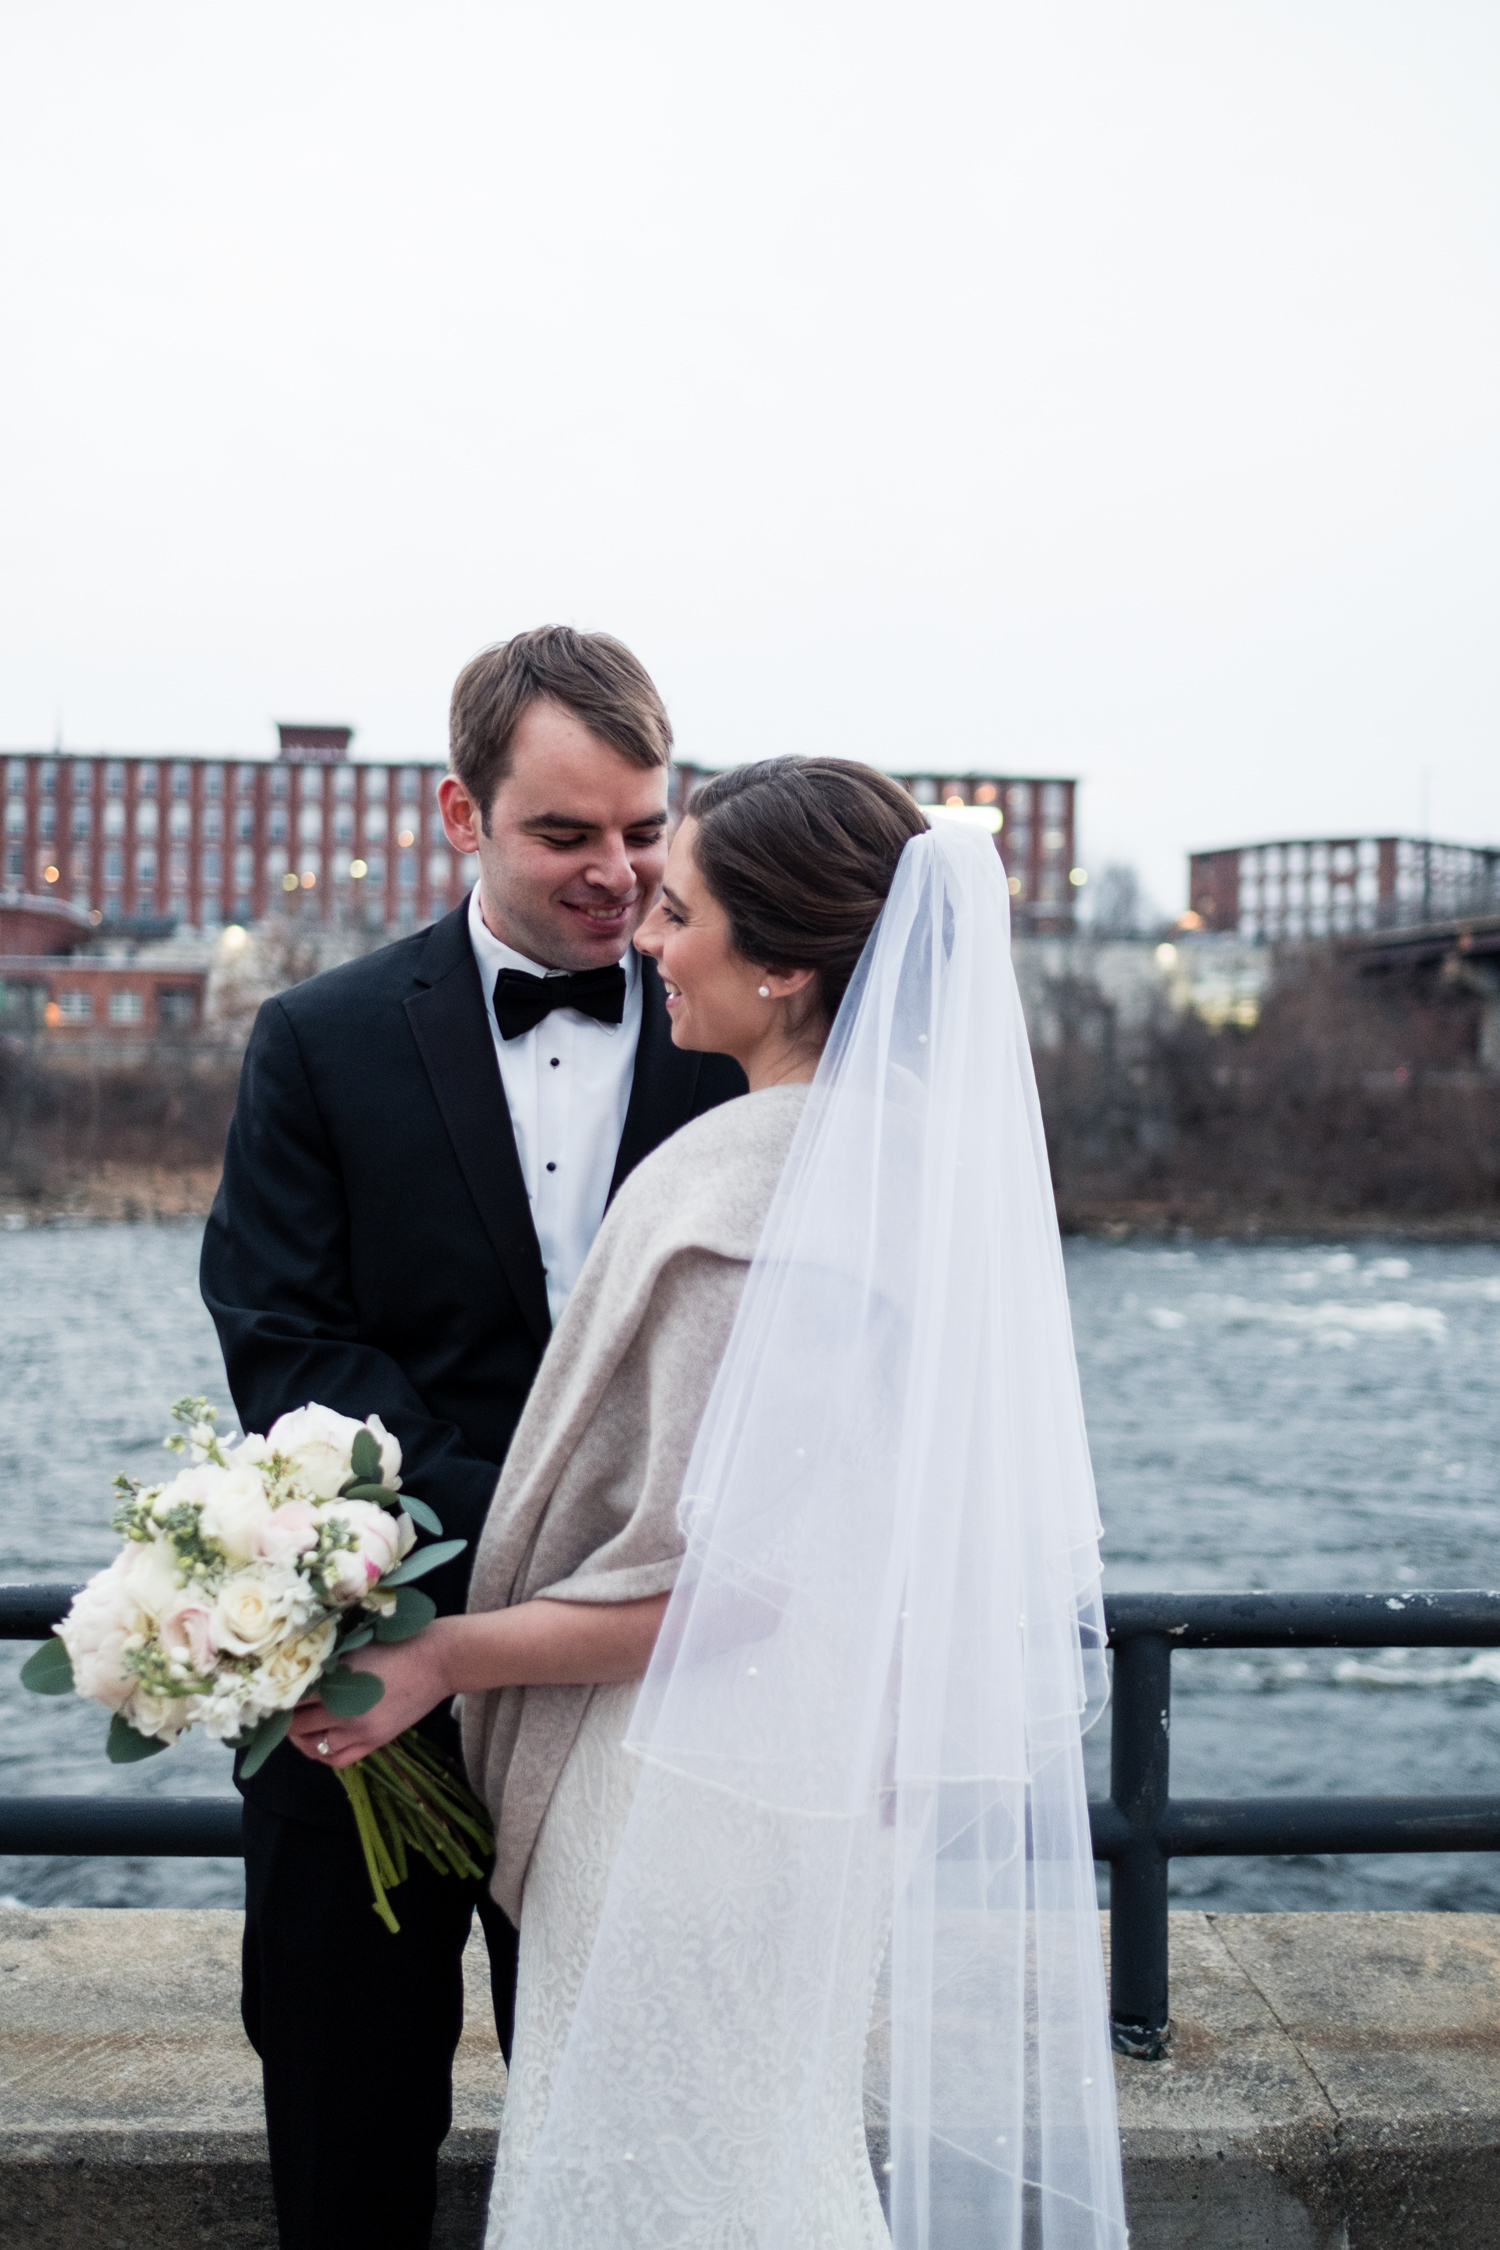 Kate_Phil_Currier_Museum_Wedding_New Hampshire-20.jpg